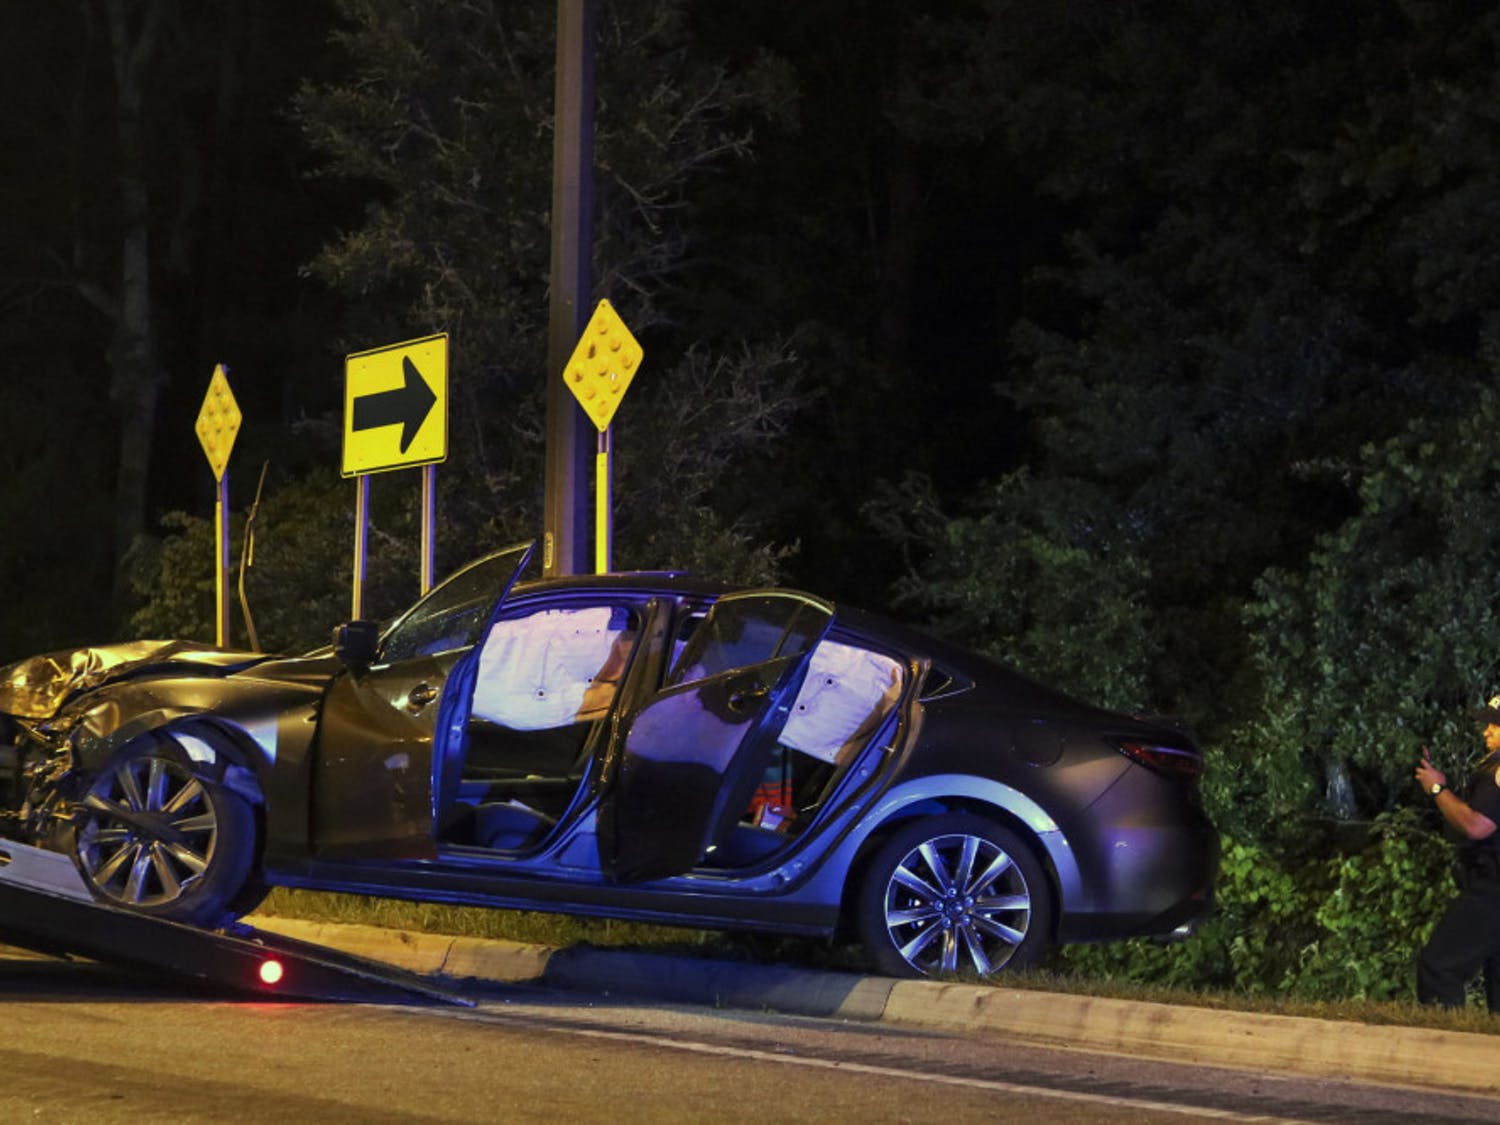 Gainesville Police Officer J. Allen inspects the crashed car Monday night.